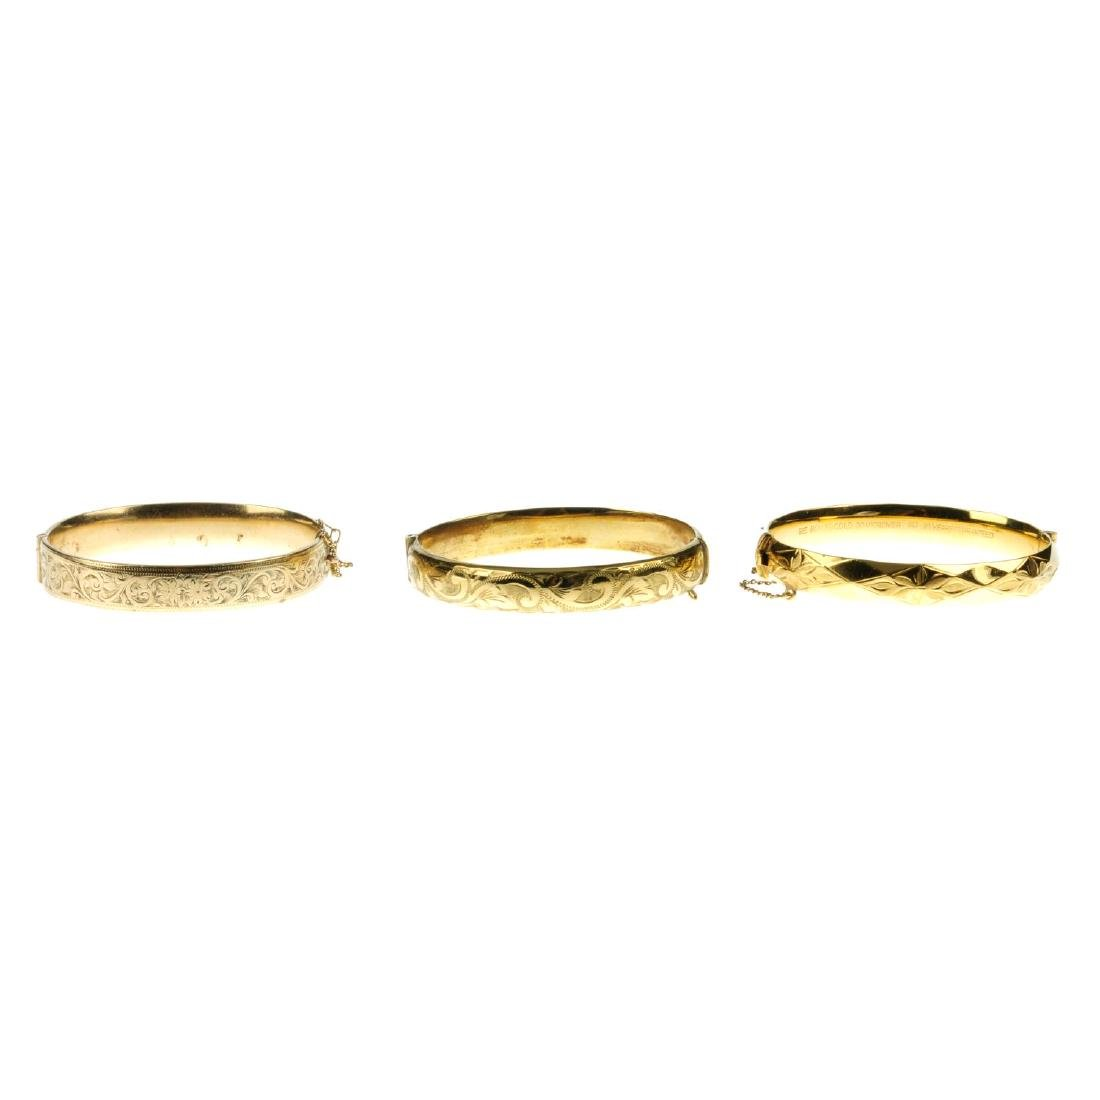 Eight mainly rolled gold bangles. To include one with